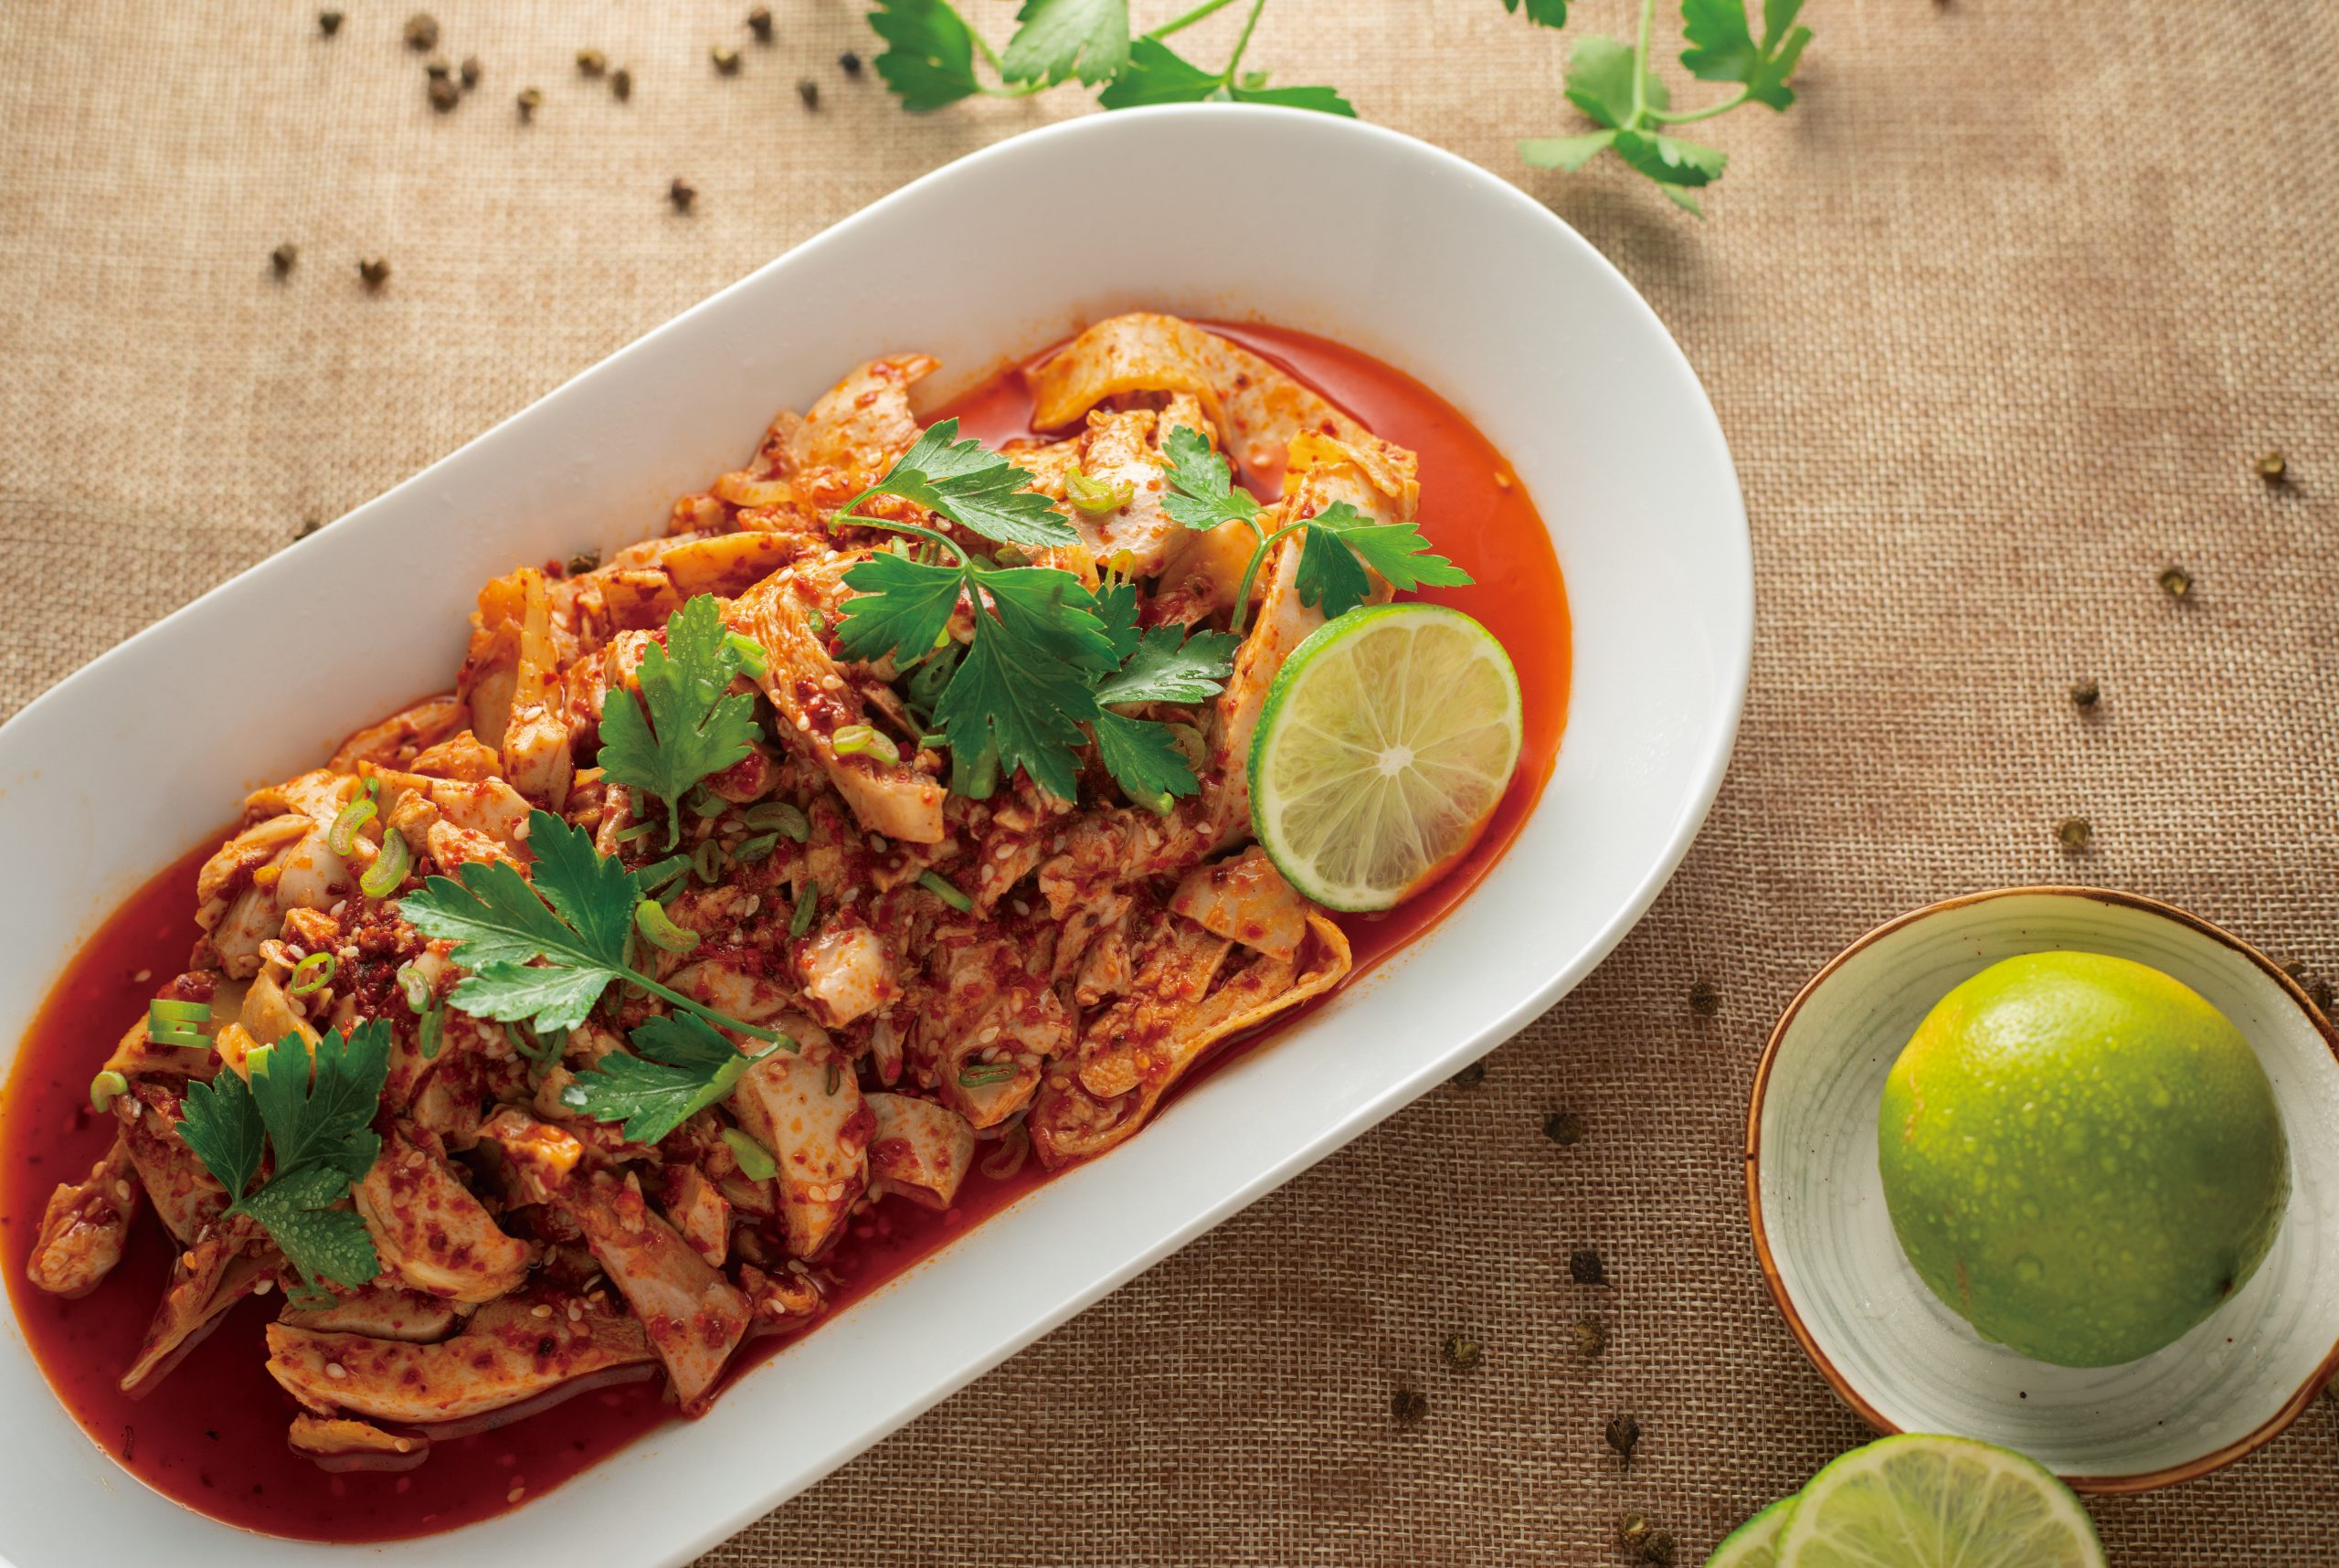 recipes inspired by 14th solar term - Rattan Peppercorn and Red Chili Chicken